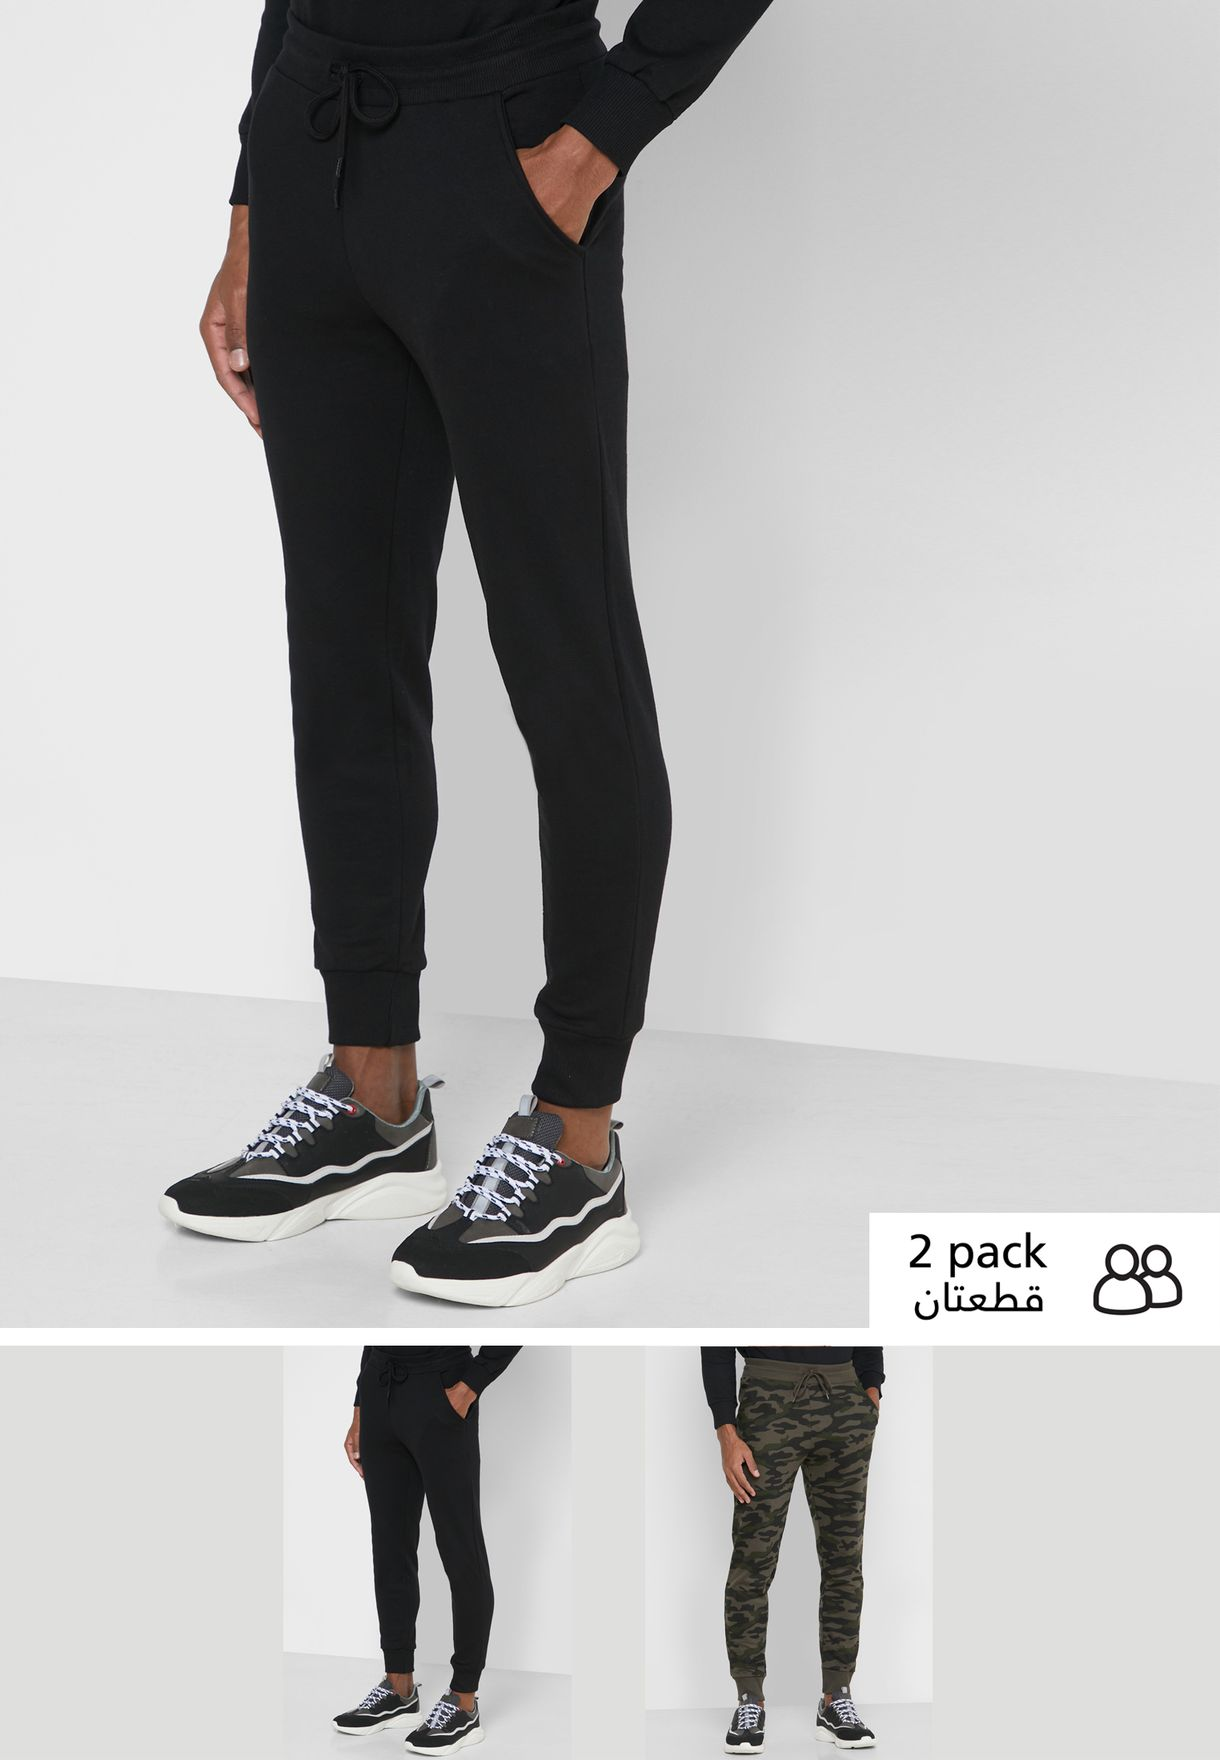 2 Pack Sweatpants